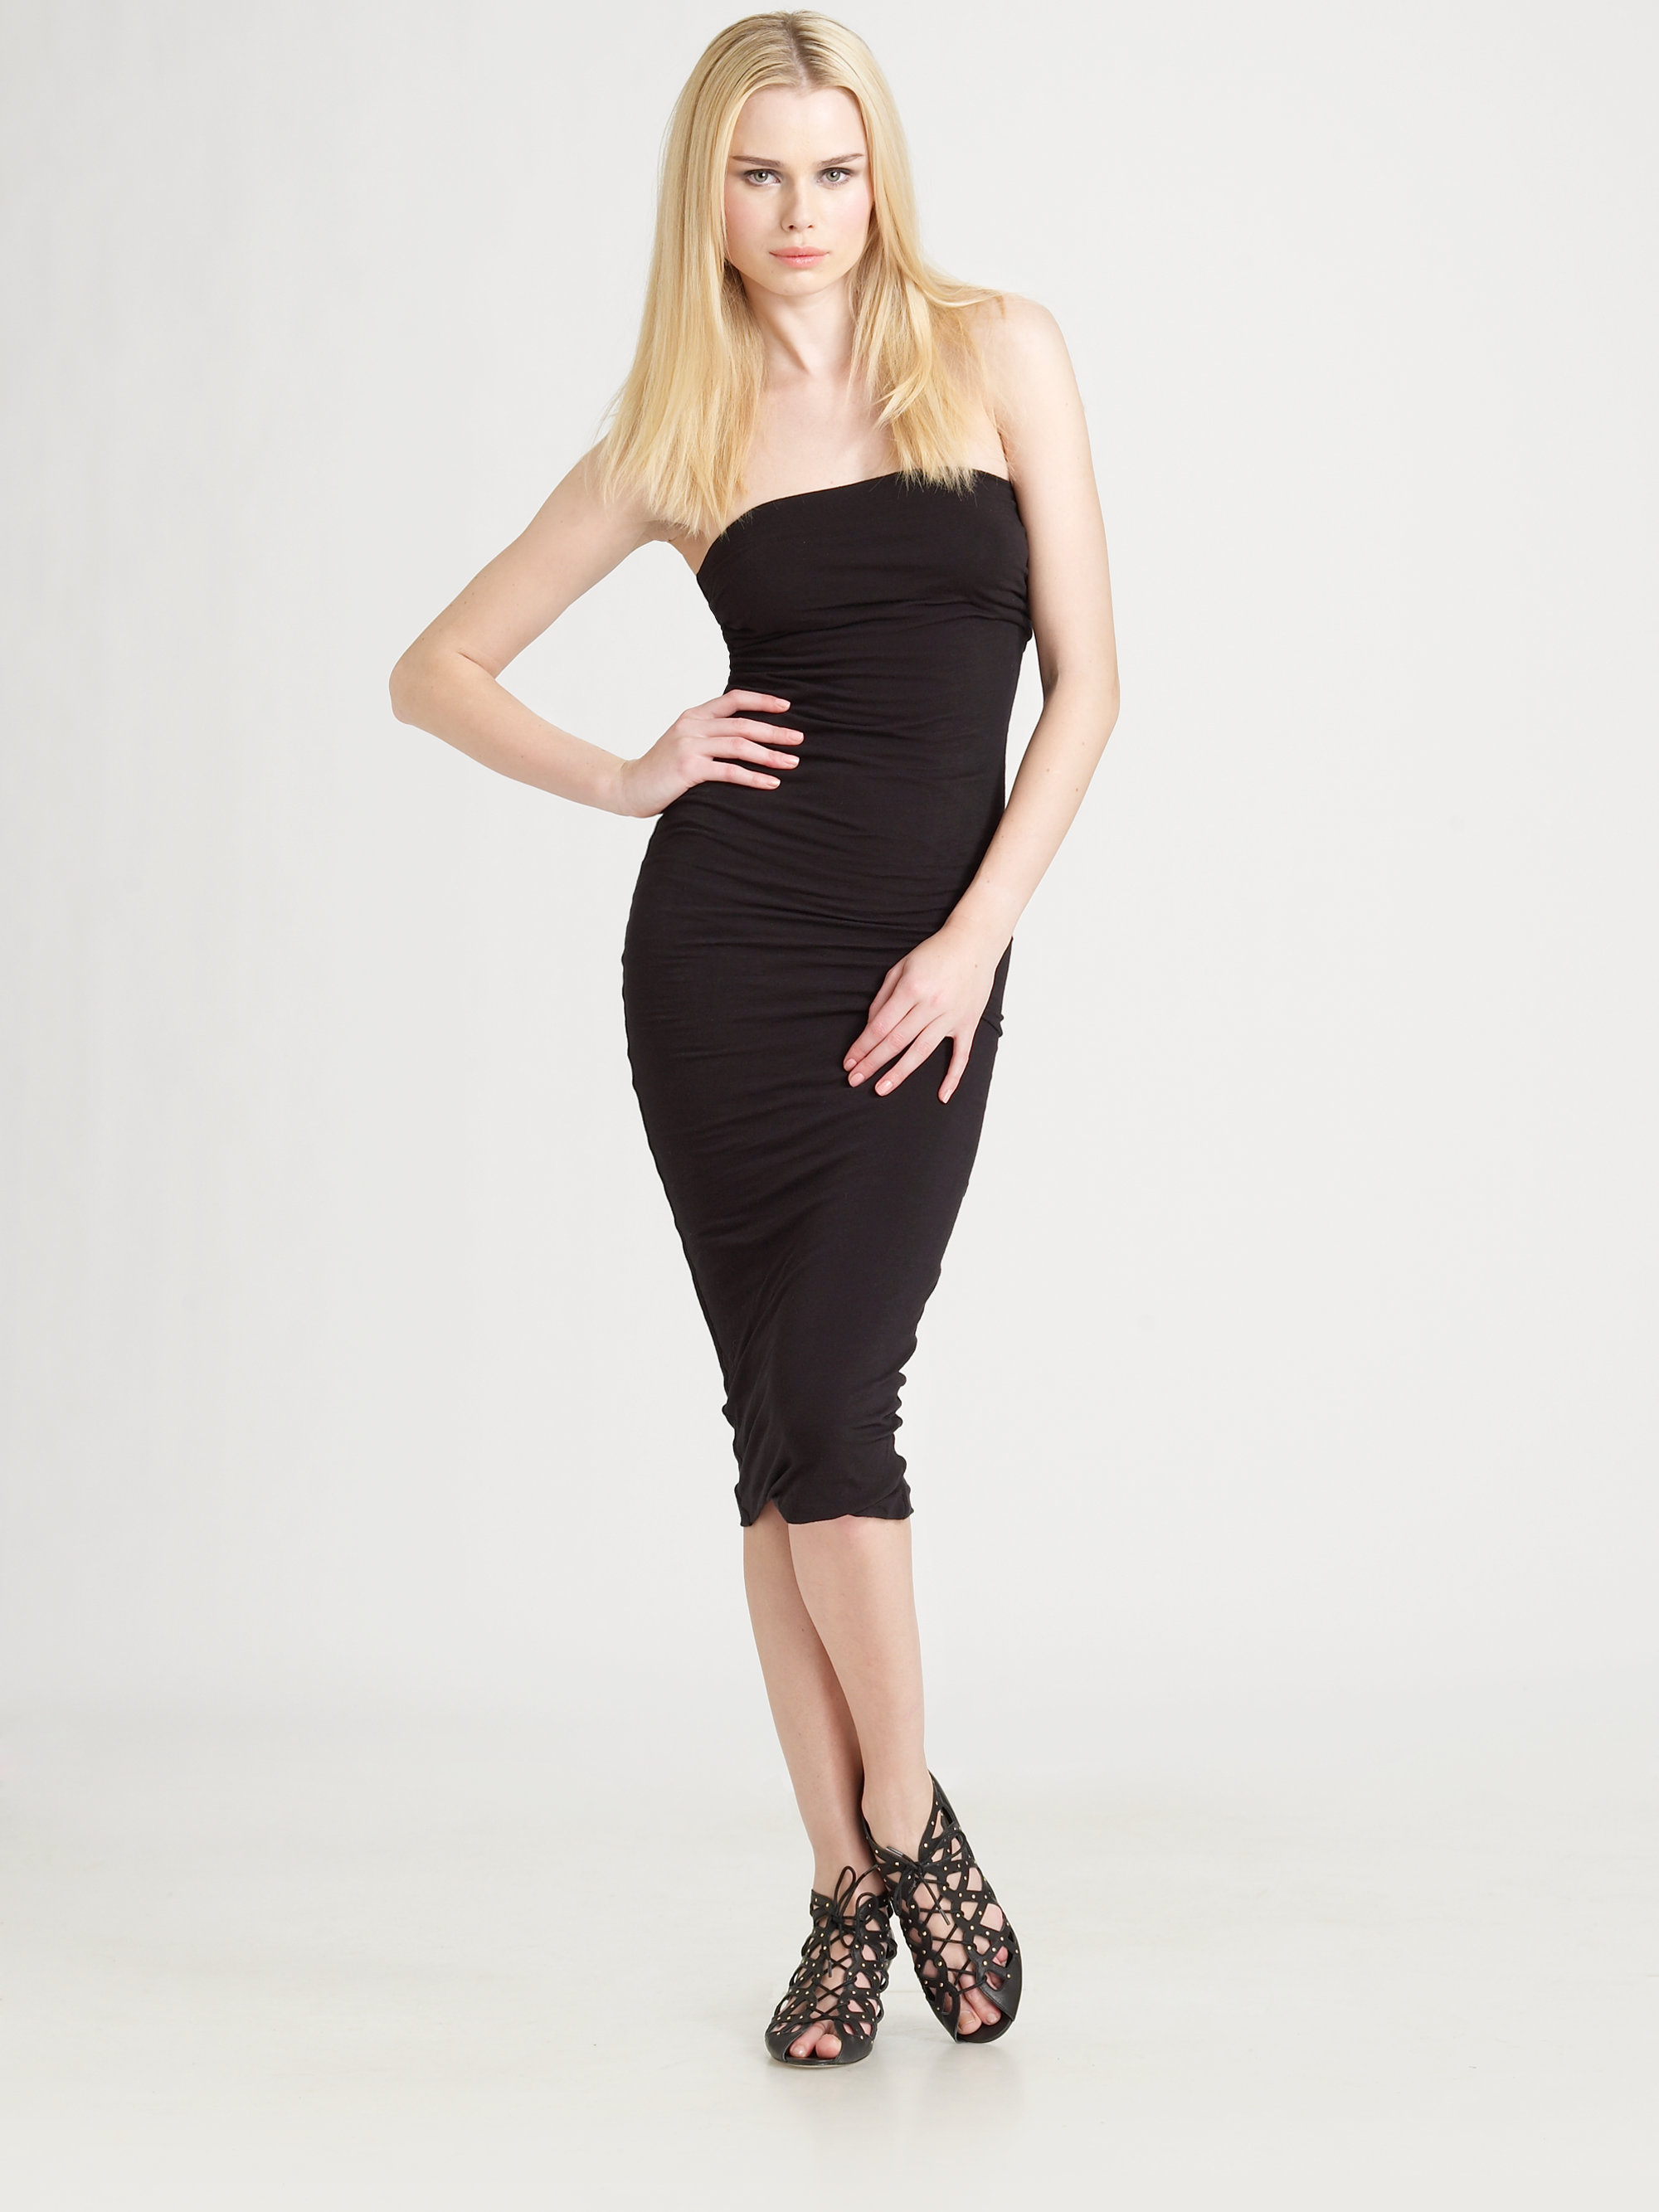 James perse Strapless Jersey Tube Dress in Black | Lyst